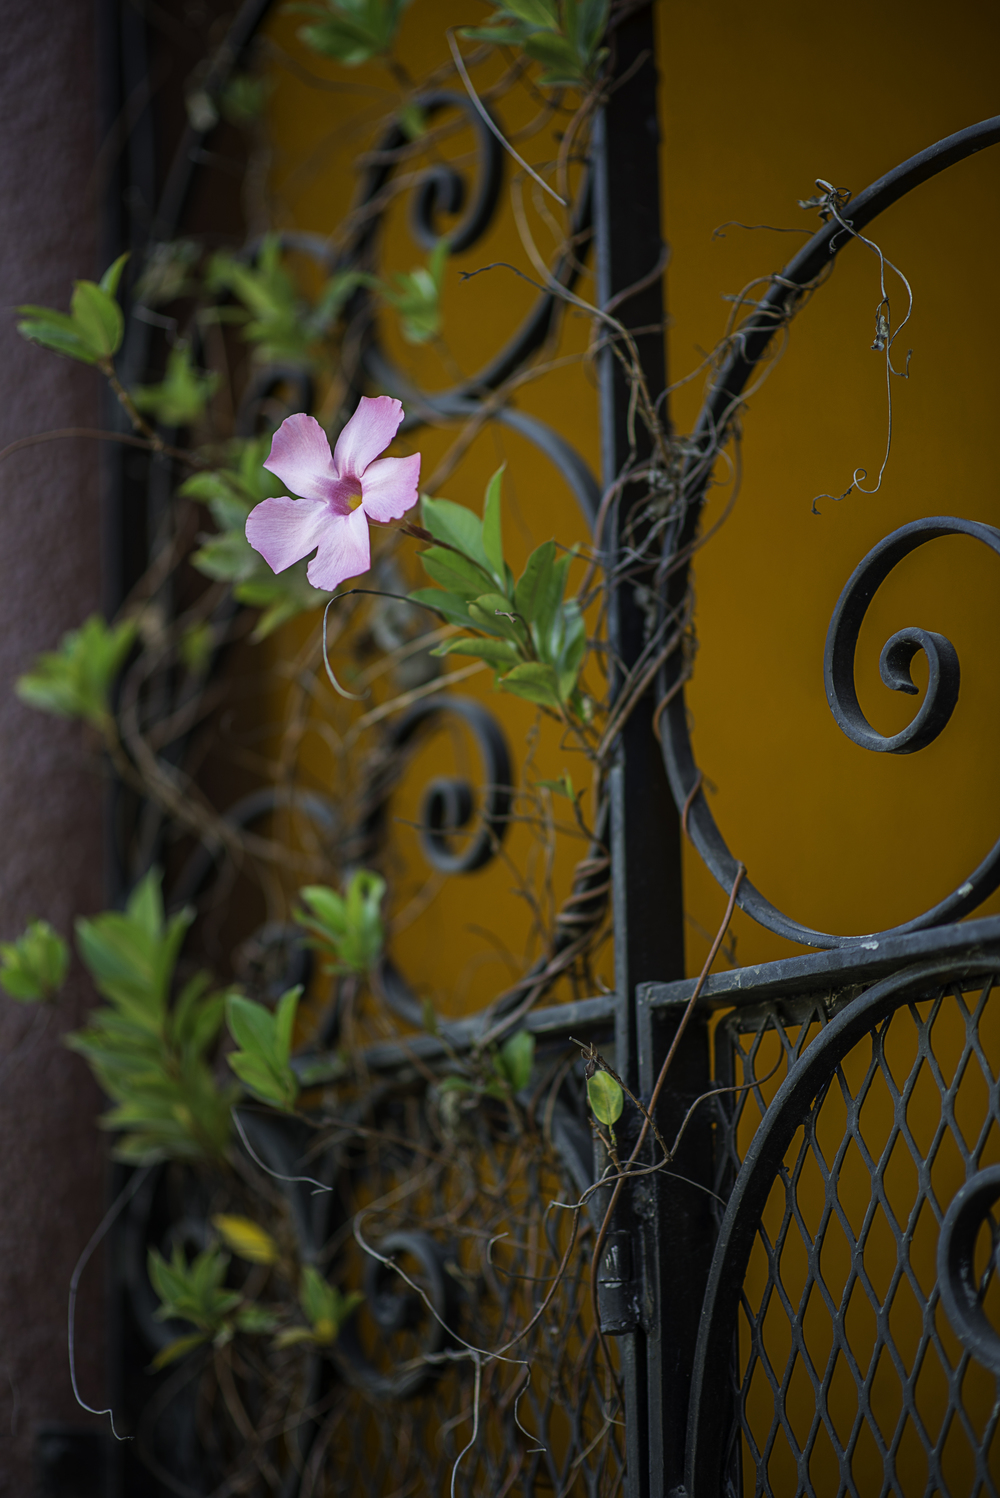 Flowers on Gate, San Francisco